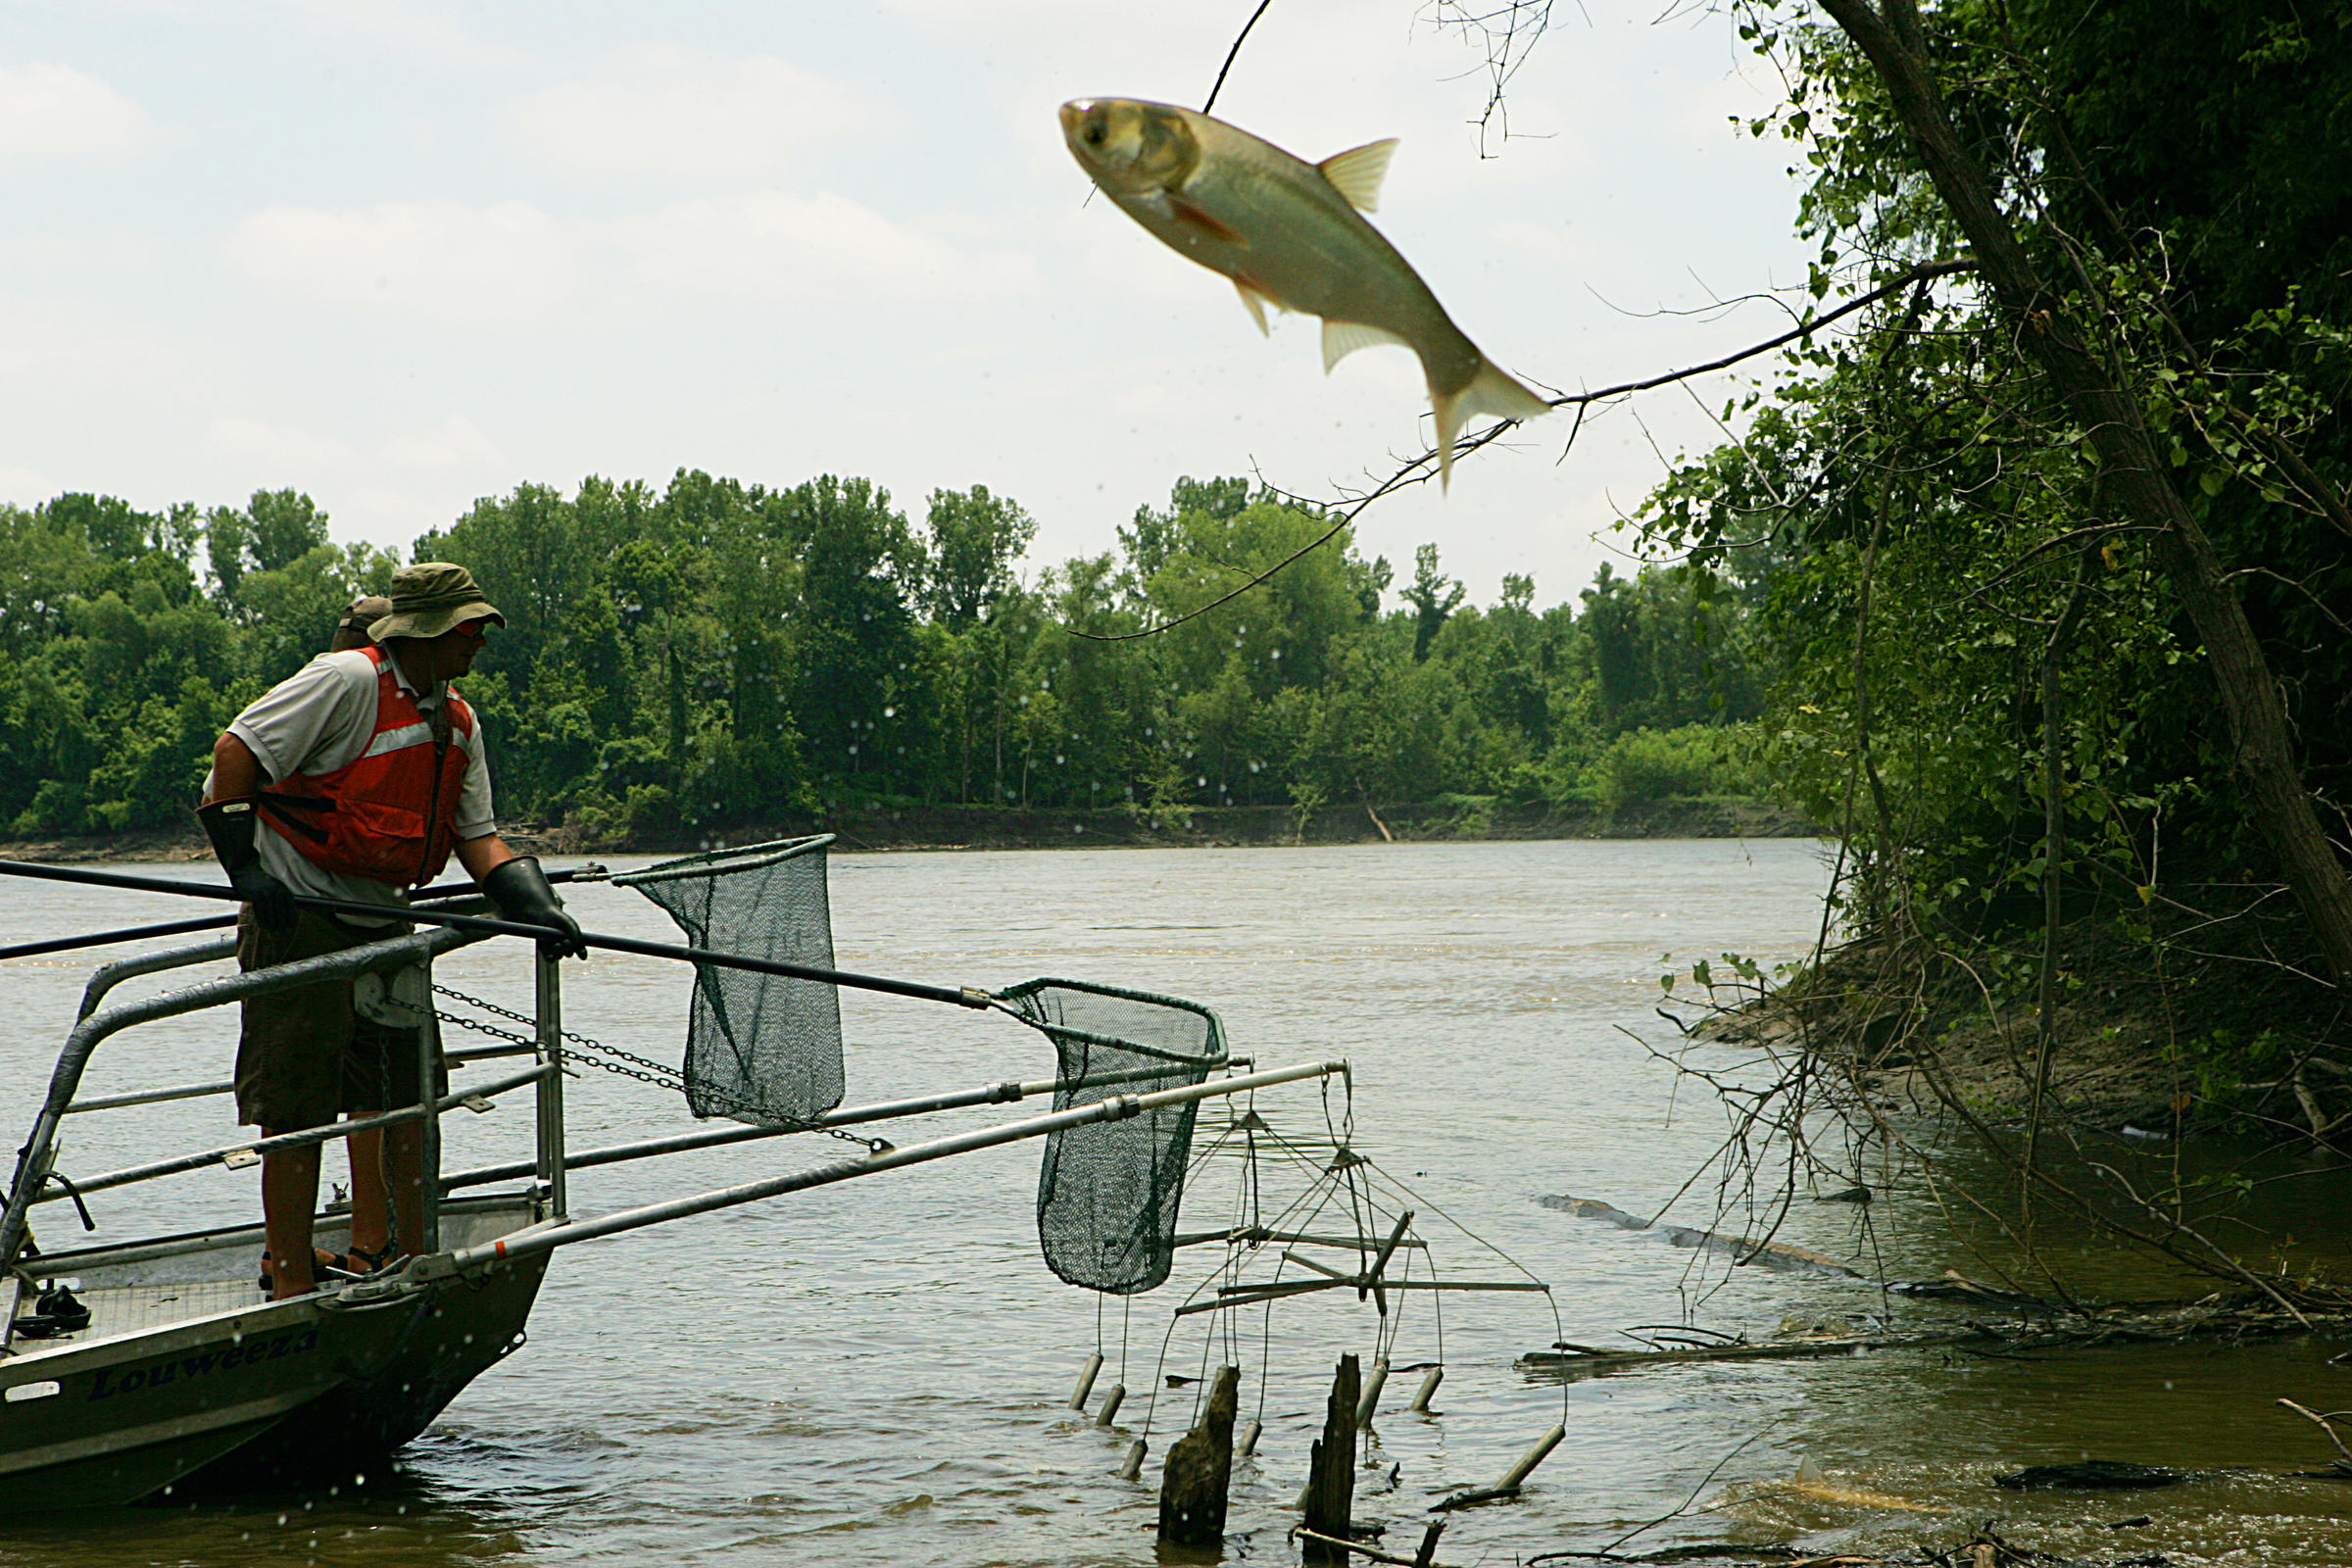 Michigan Radio: More than 200 outdoor groups support Army Corps plan to block Asian carp